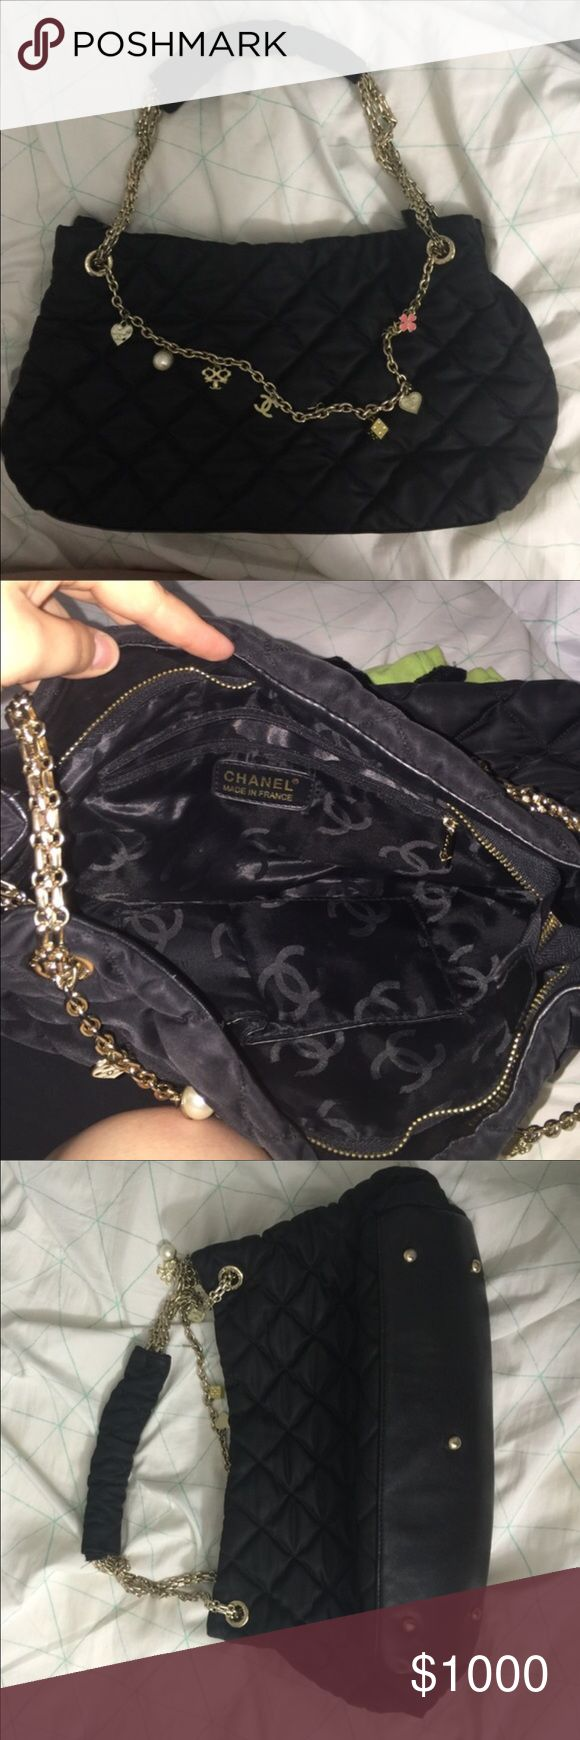 17 Best Ideas About Chanel Bag Black On Pinterest Chanel